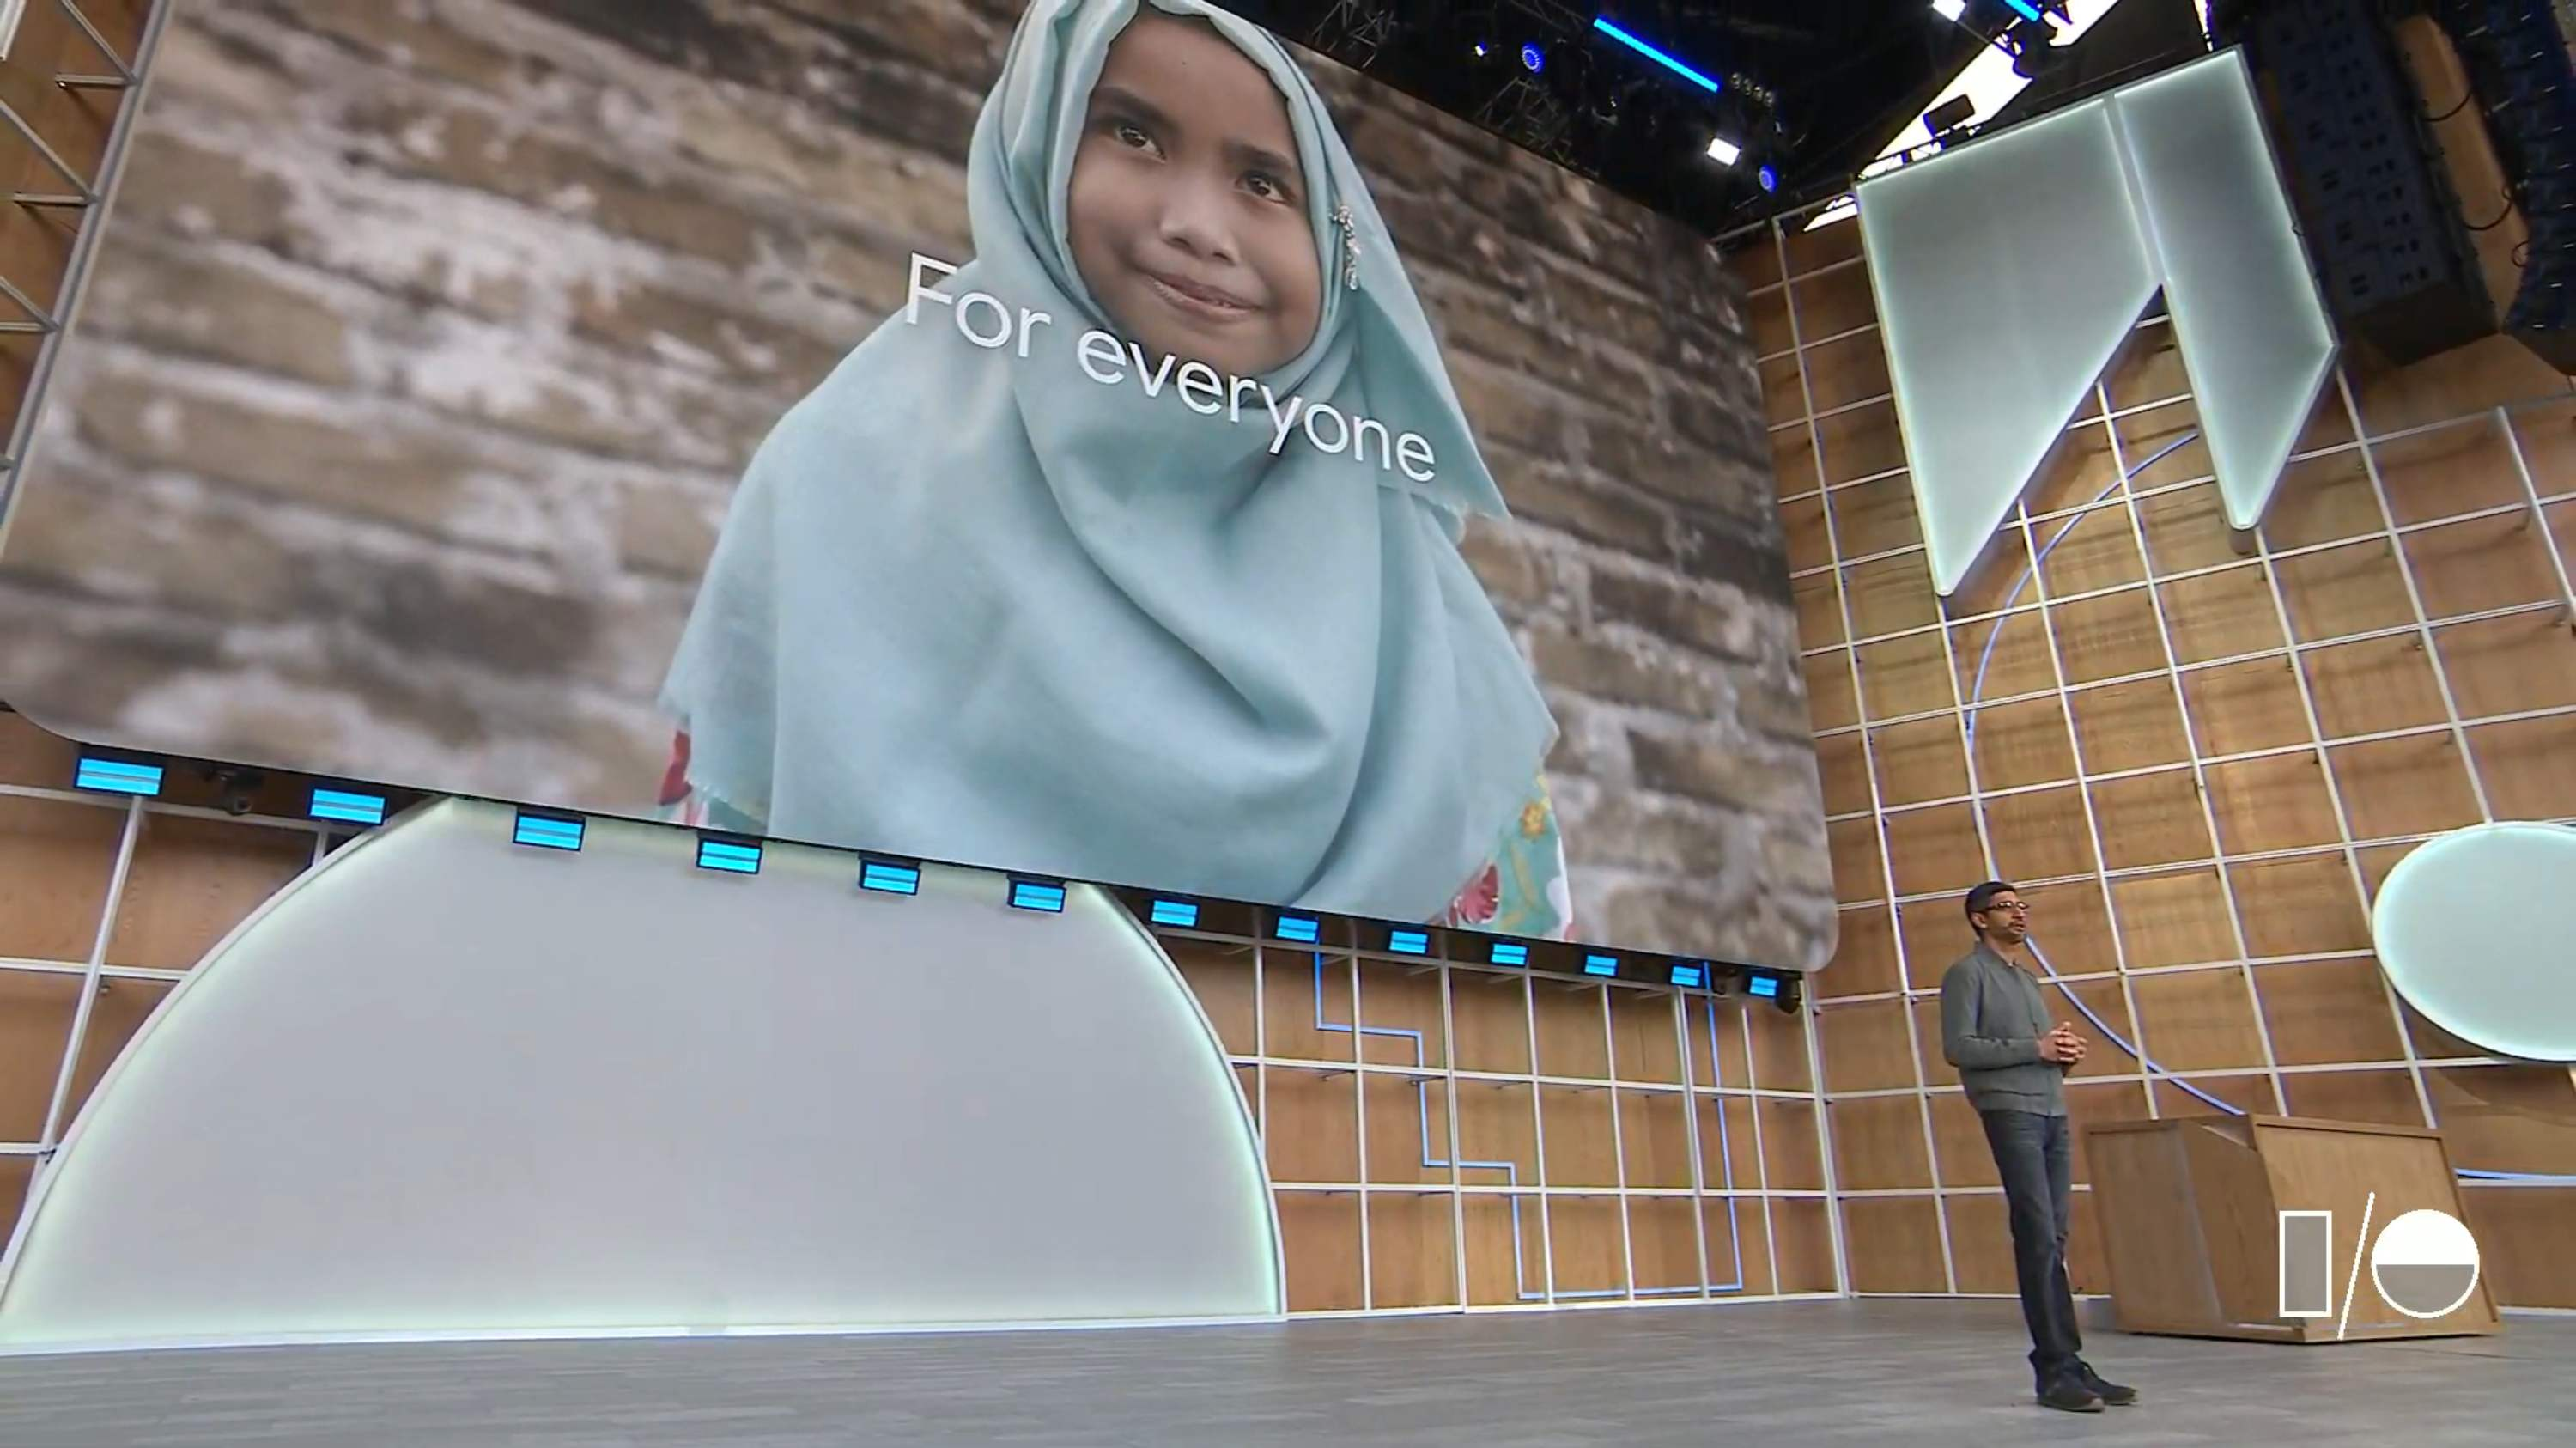 Google spotlights two tools in the fight against bias in AI